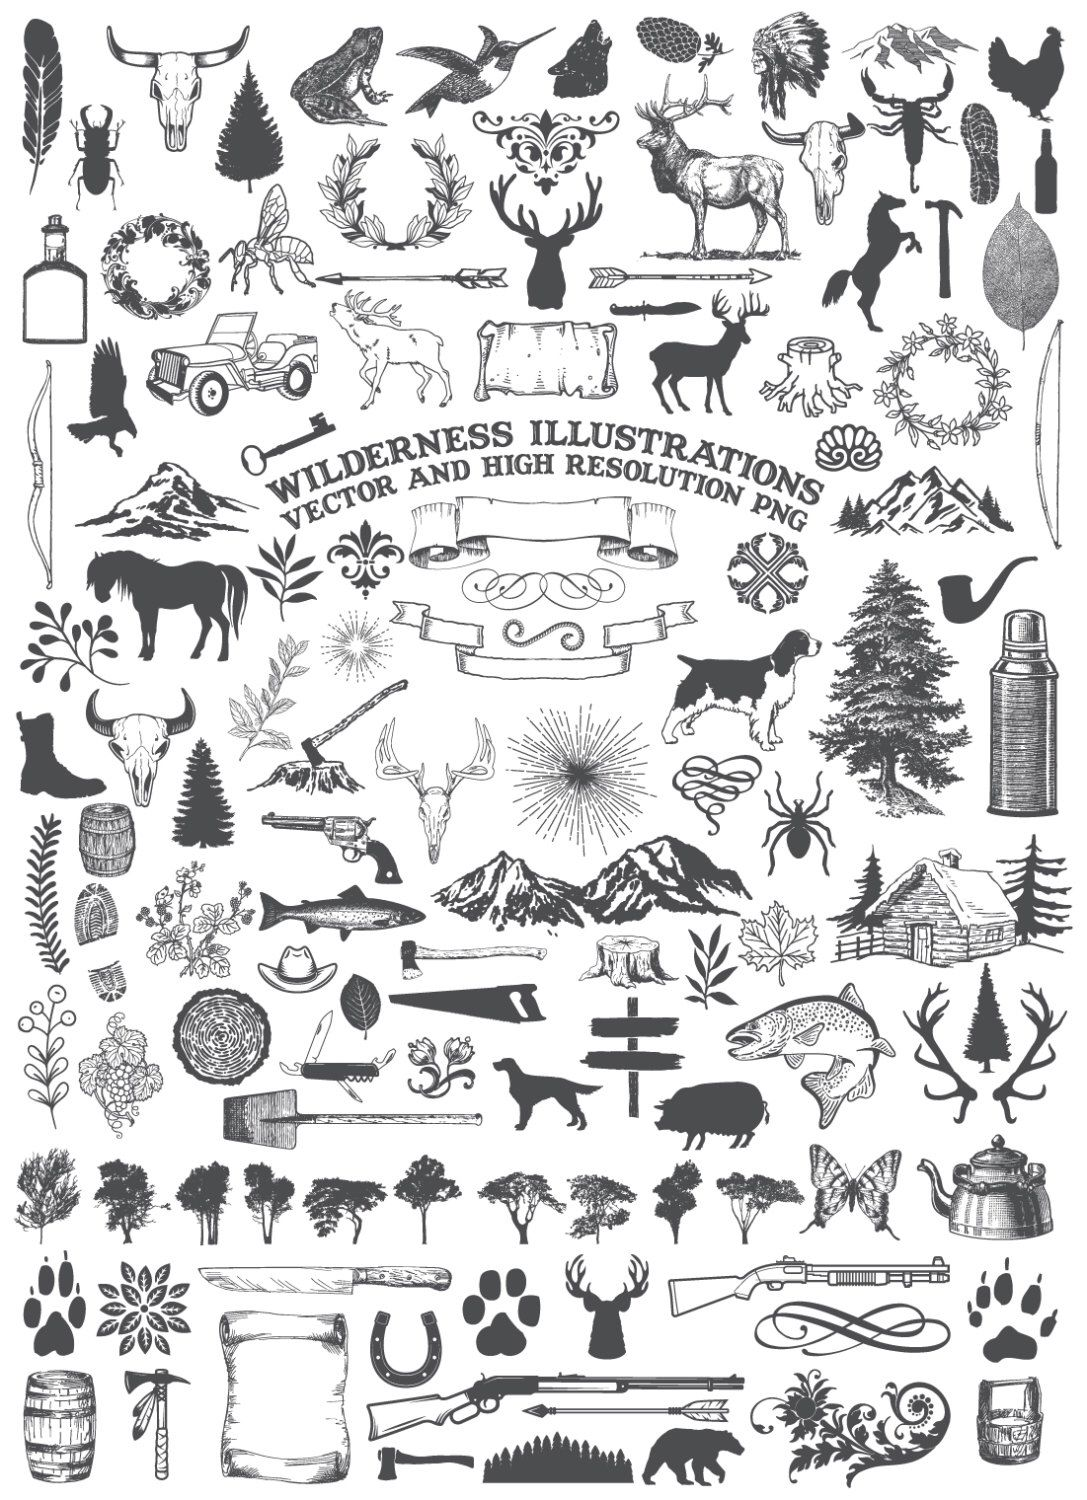 Clipart animal adventure image black and white library Camping Clipart, Animal Clipart - Nature Rustic Adventure Wilderness ... image black and white library